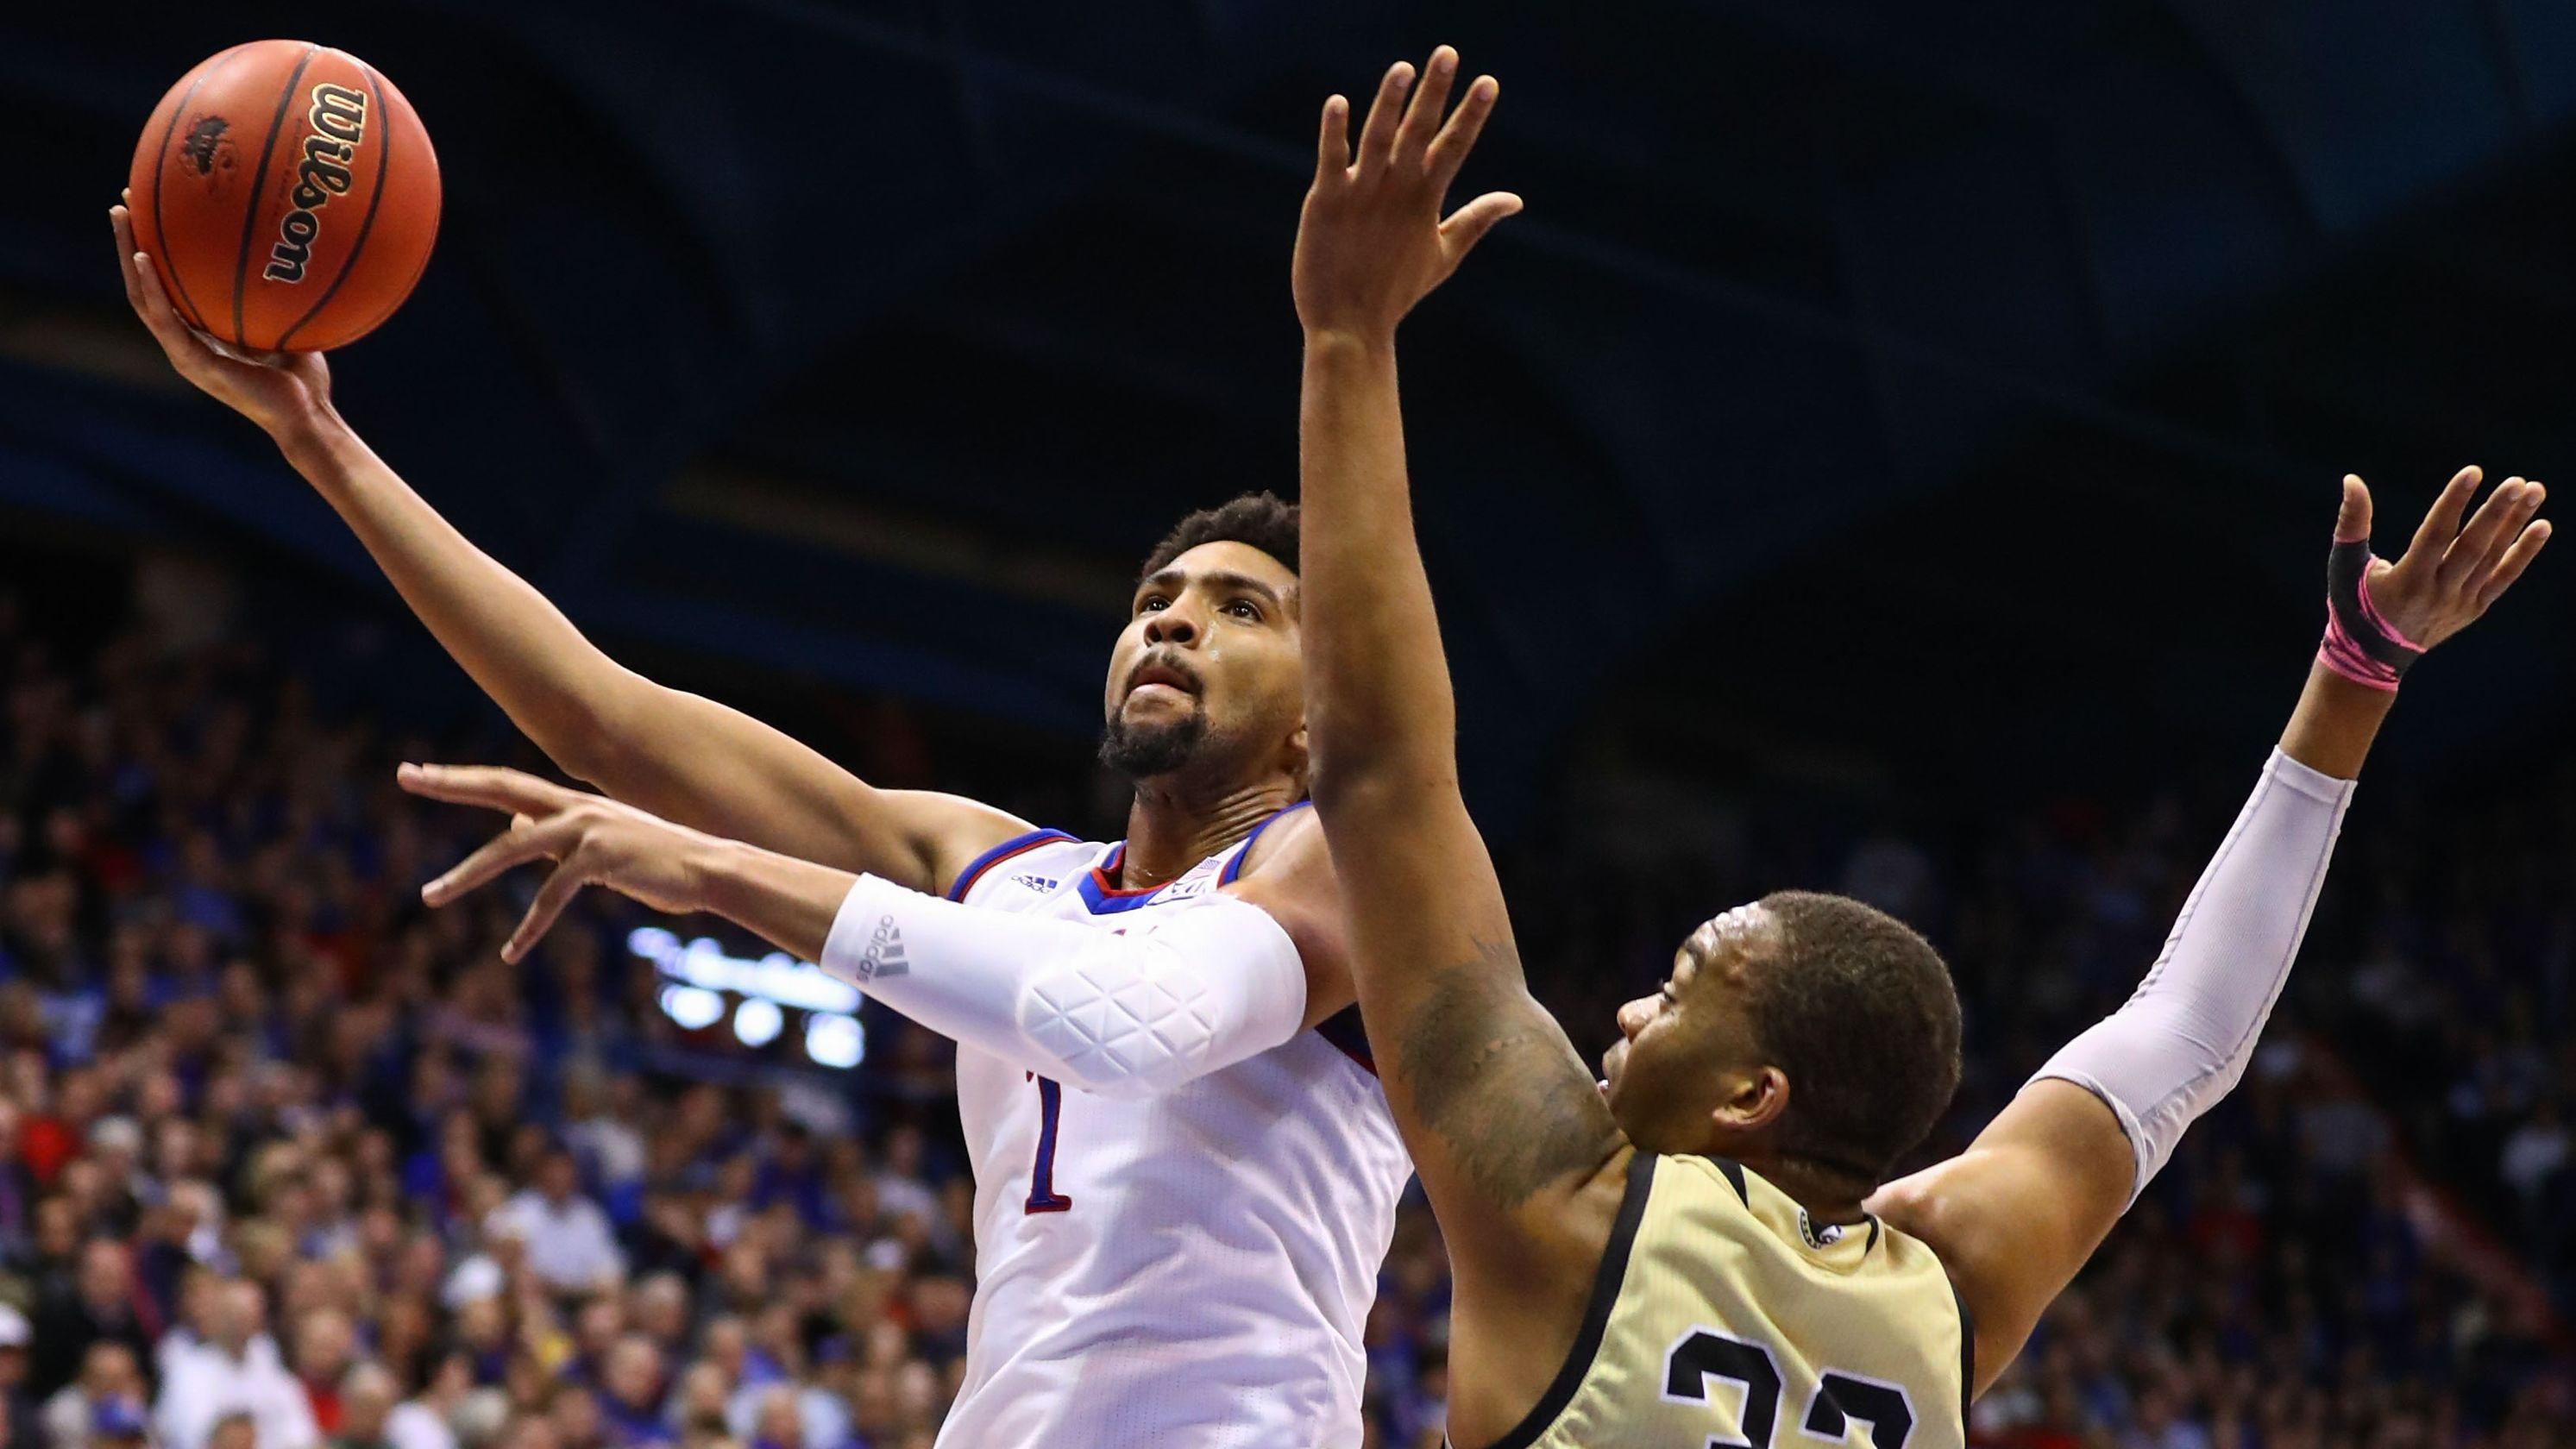 Kansas takes over at No. 1 in USA TODAY Sports men's basketball coaches poll